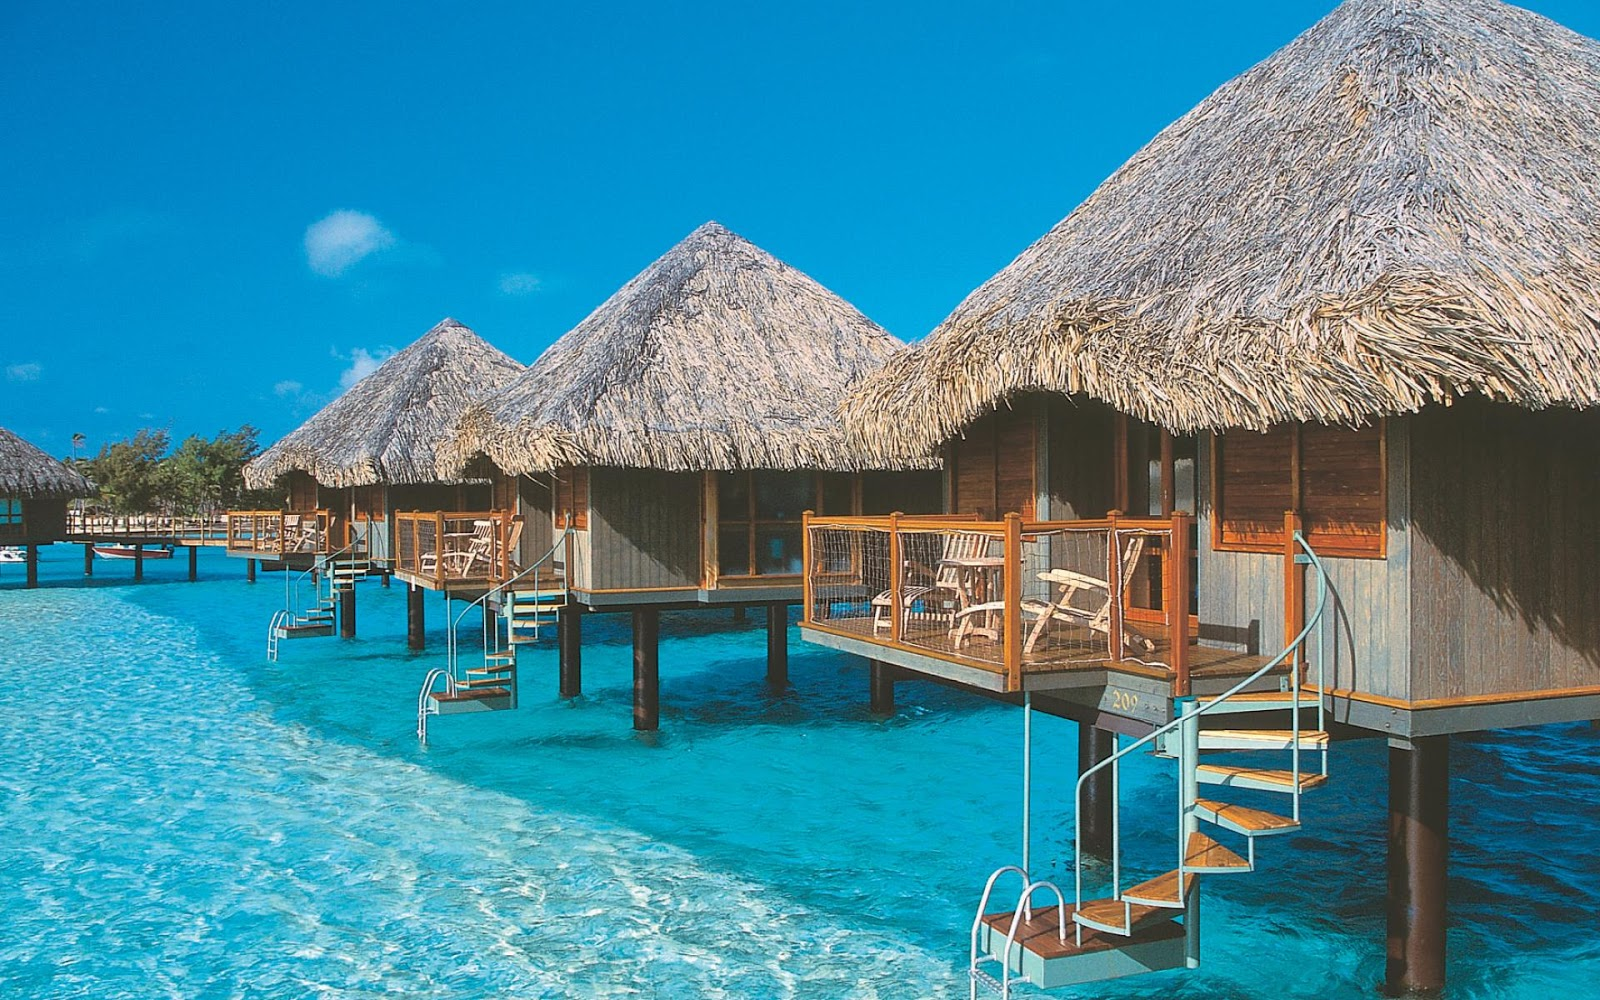 By Mesture We're Going To Tahiti